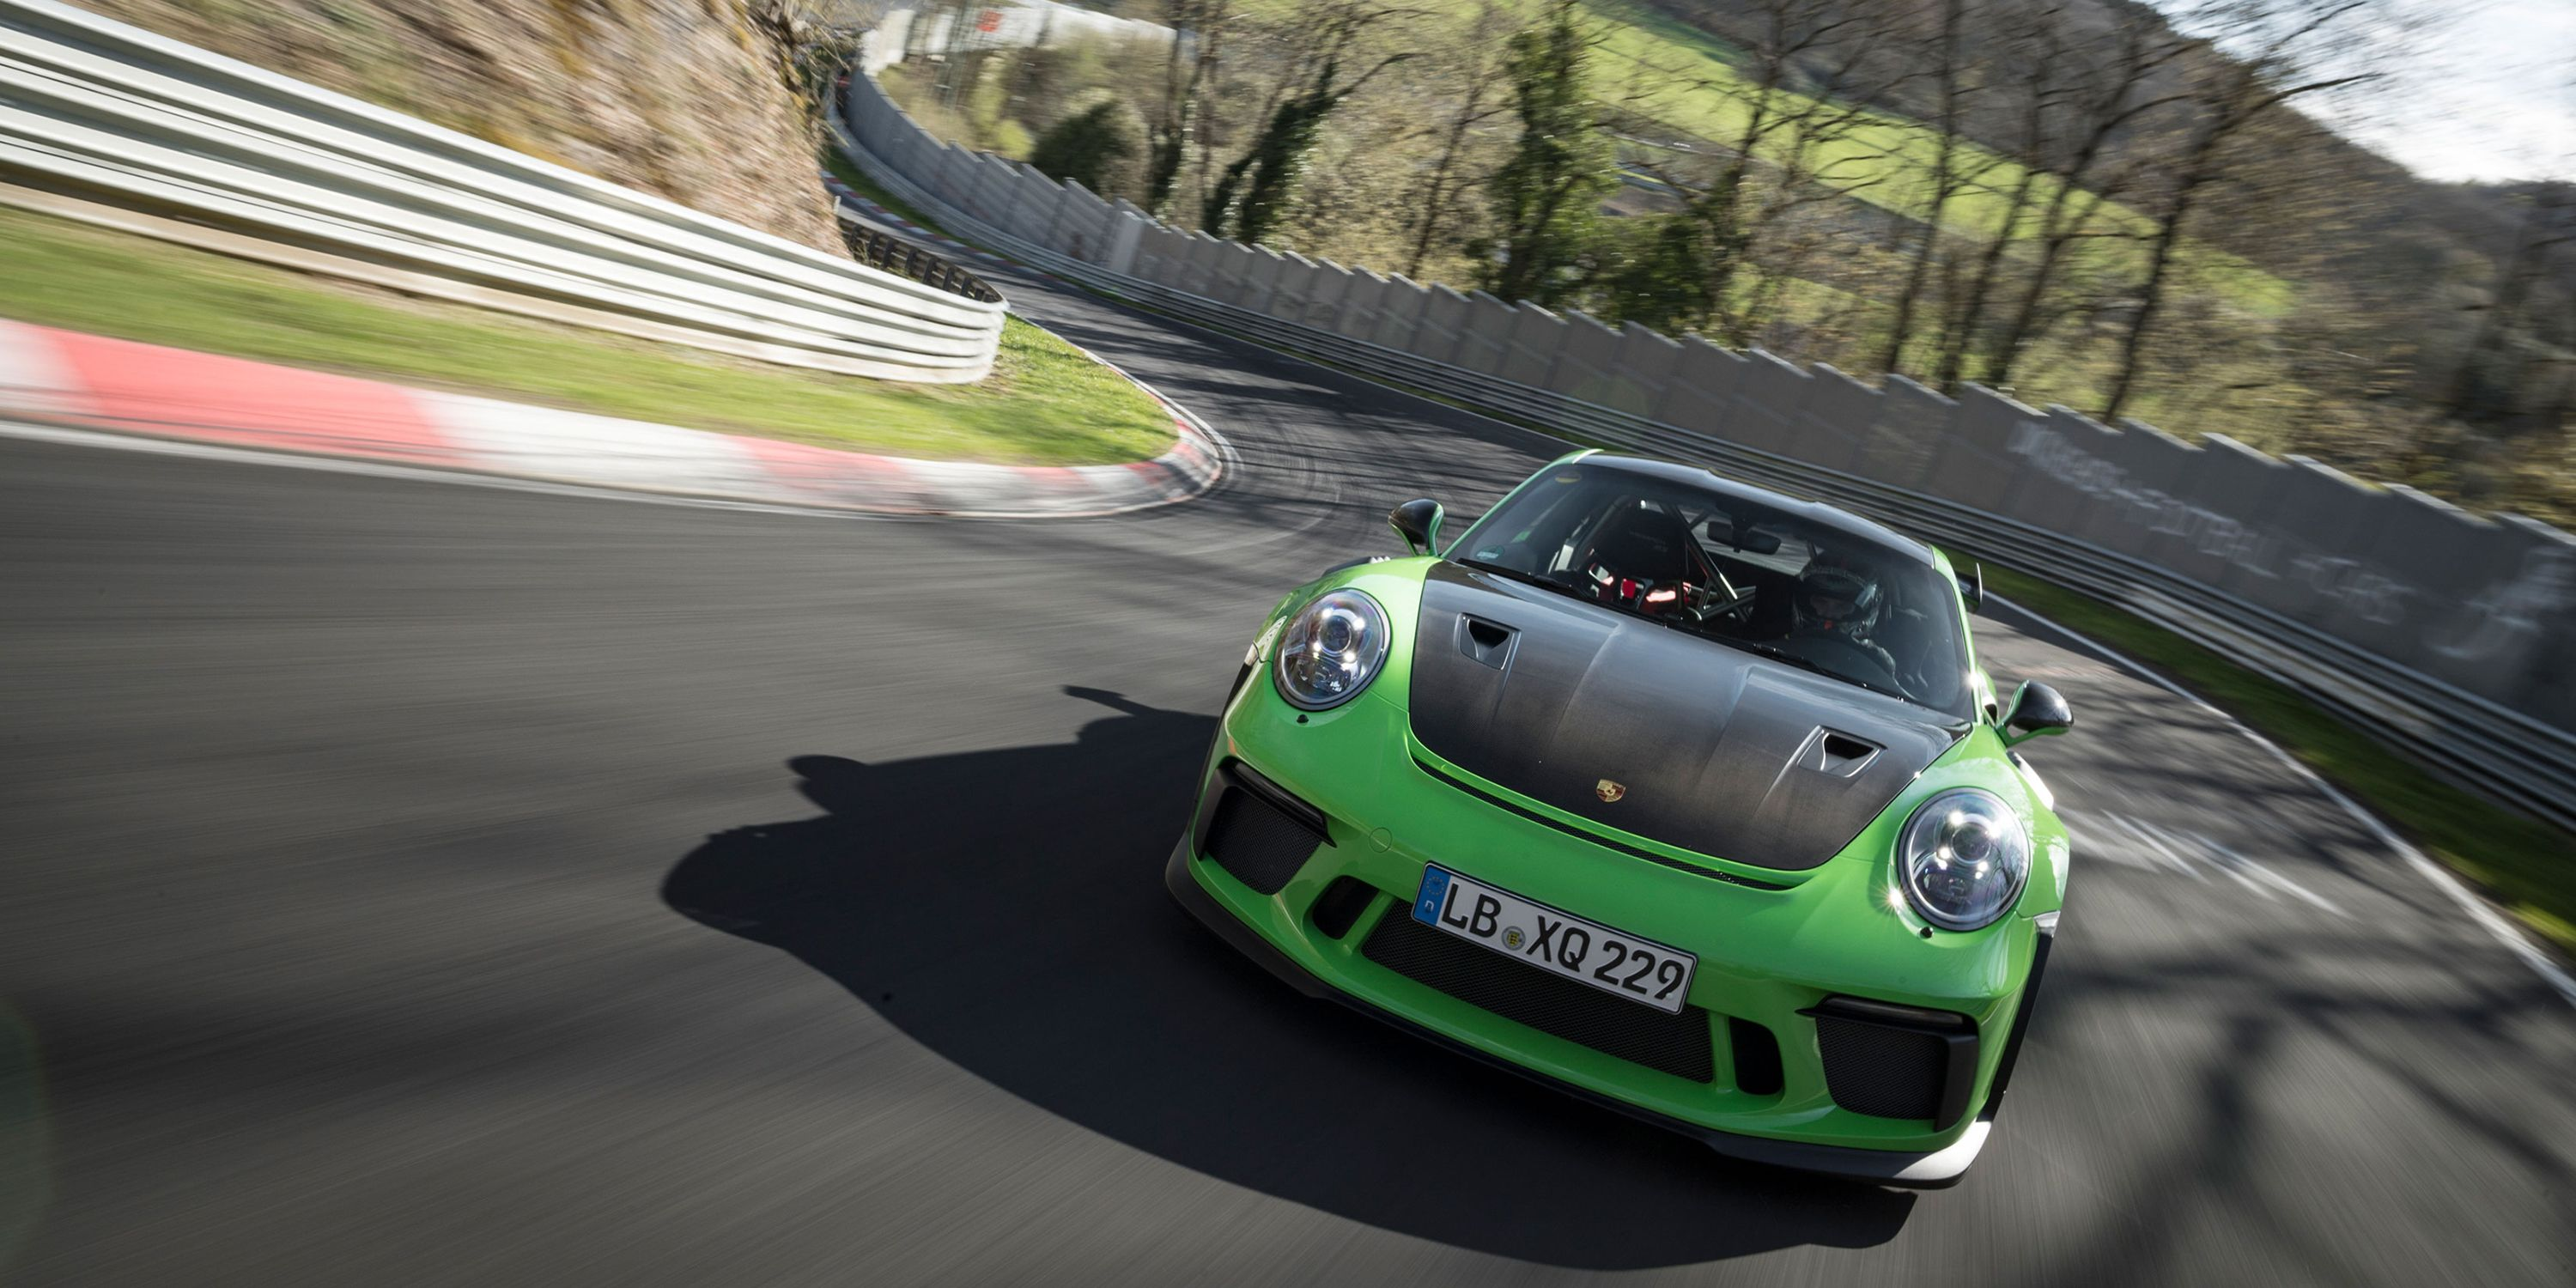 Corvette Engineers Let Porsche Use Their Nurburgring Session To Set A Gt Rs Lap Time